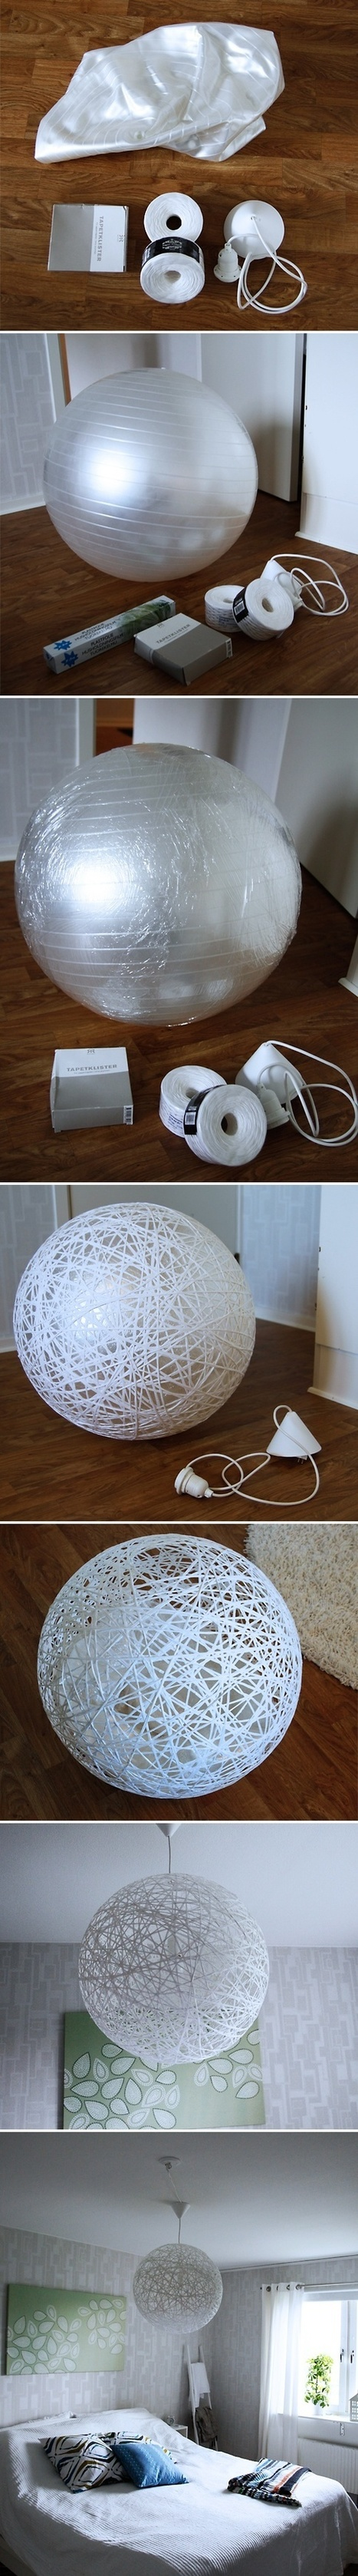 DIY | Creative Cables and Lighting Design | Scoop.it